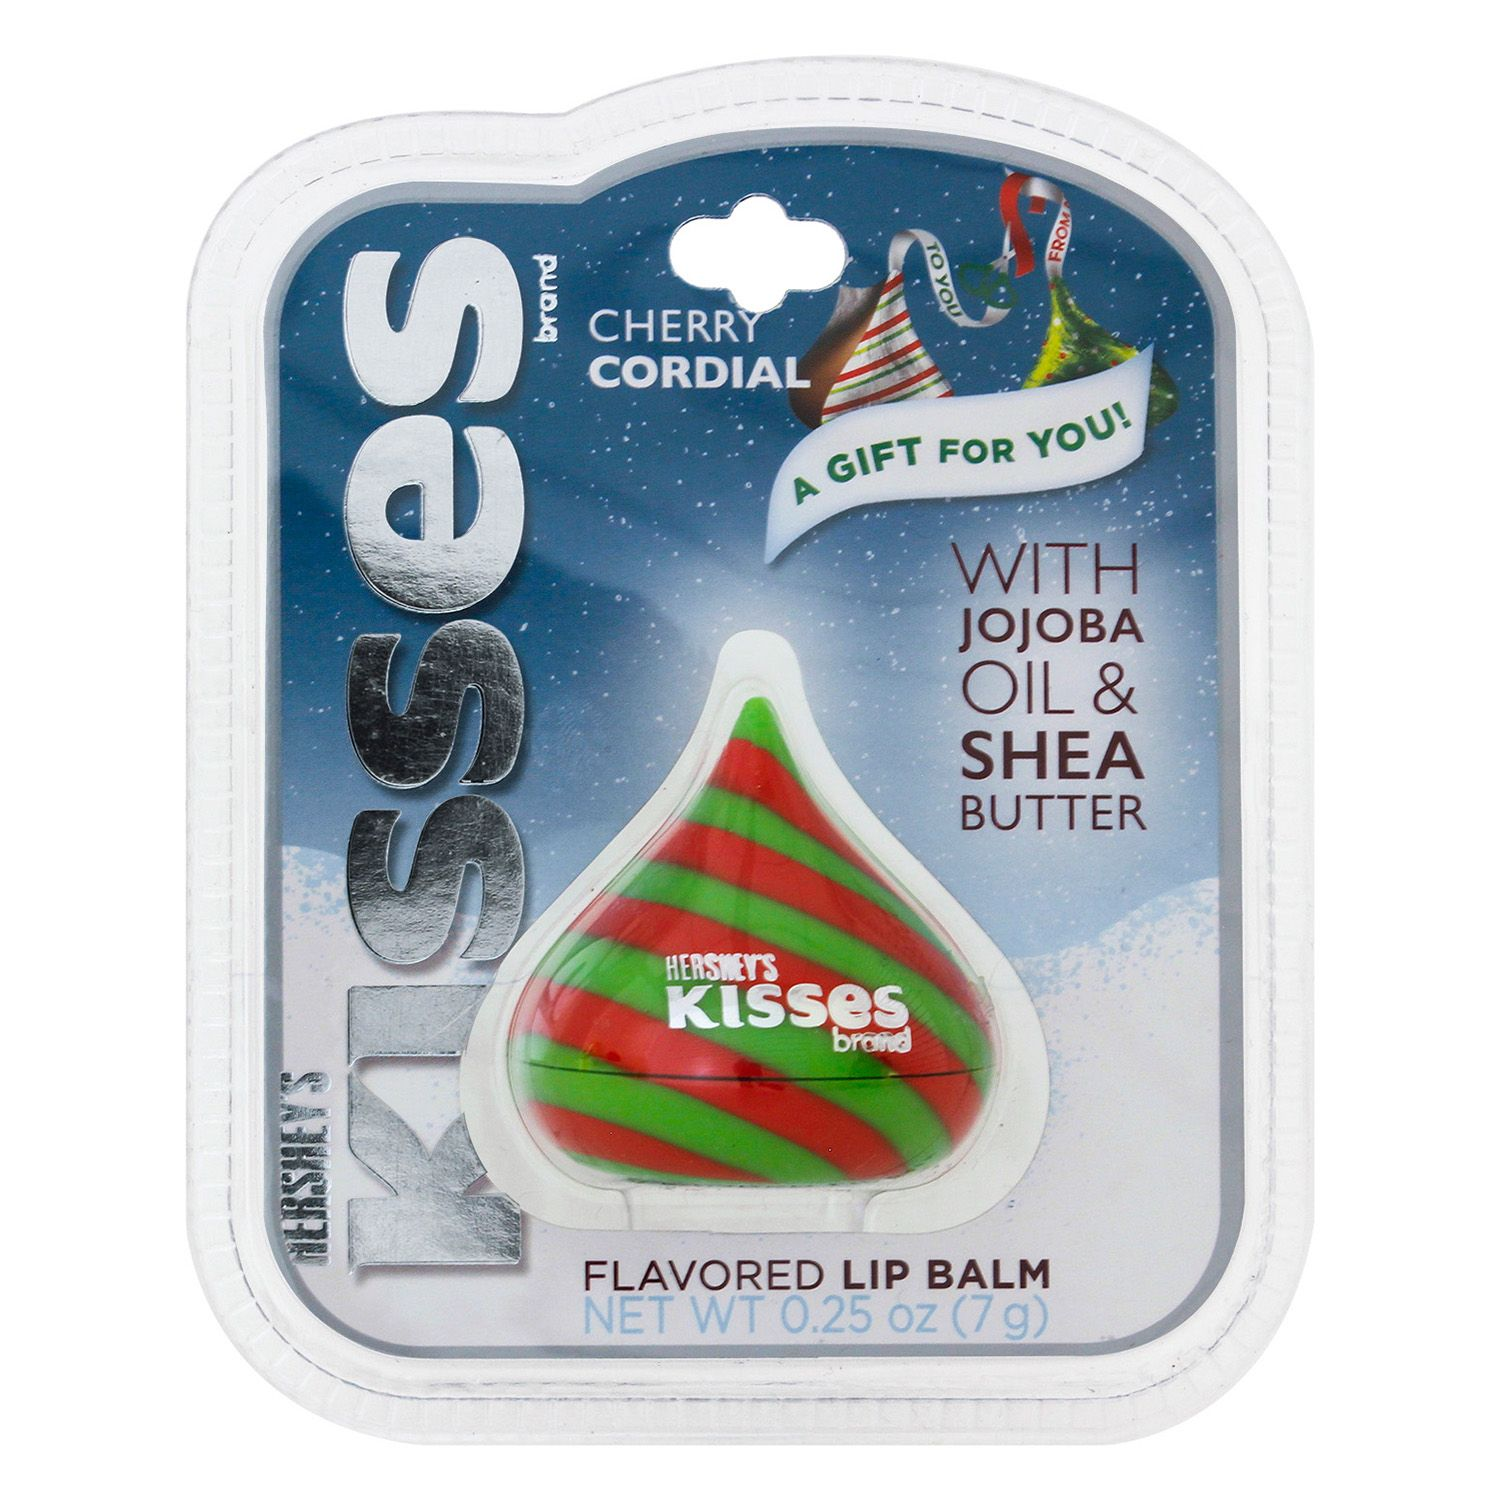 kisses flavored lip balm